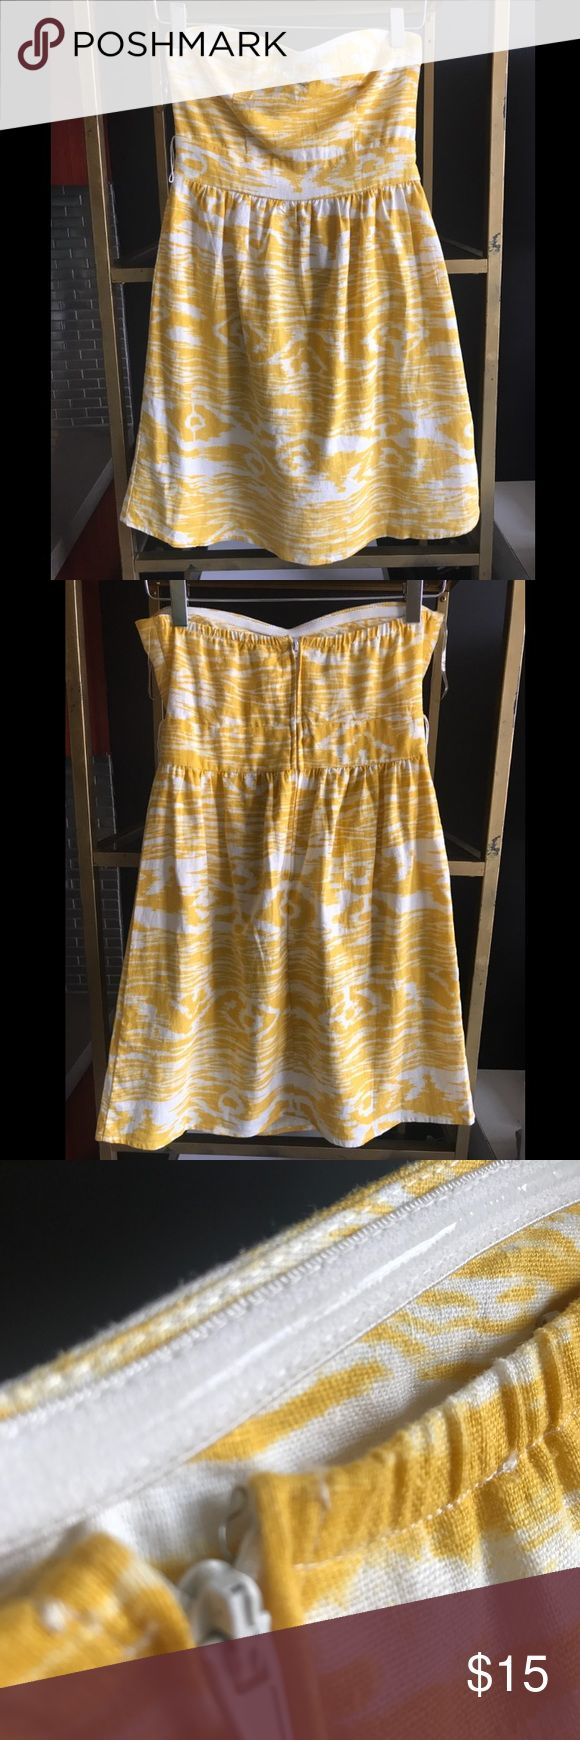 The cutest yellow okay strapless dress So cute, so fun... such a pretty sunny color in a great ikat pattern. works well for hot summer days and throw a little jacket or white cardigan over it to take you in to fall. Great fitted top with subtle sweetheart neck, clear grip band inside the top edge keeps dress up without any yanking or slipping, zips at back.  Hits just above knee. Lined in front. Fit was tight enough on me that I was able to go braless because of the lining. Worn only a…